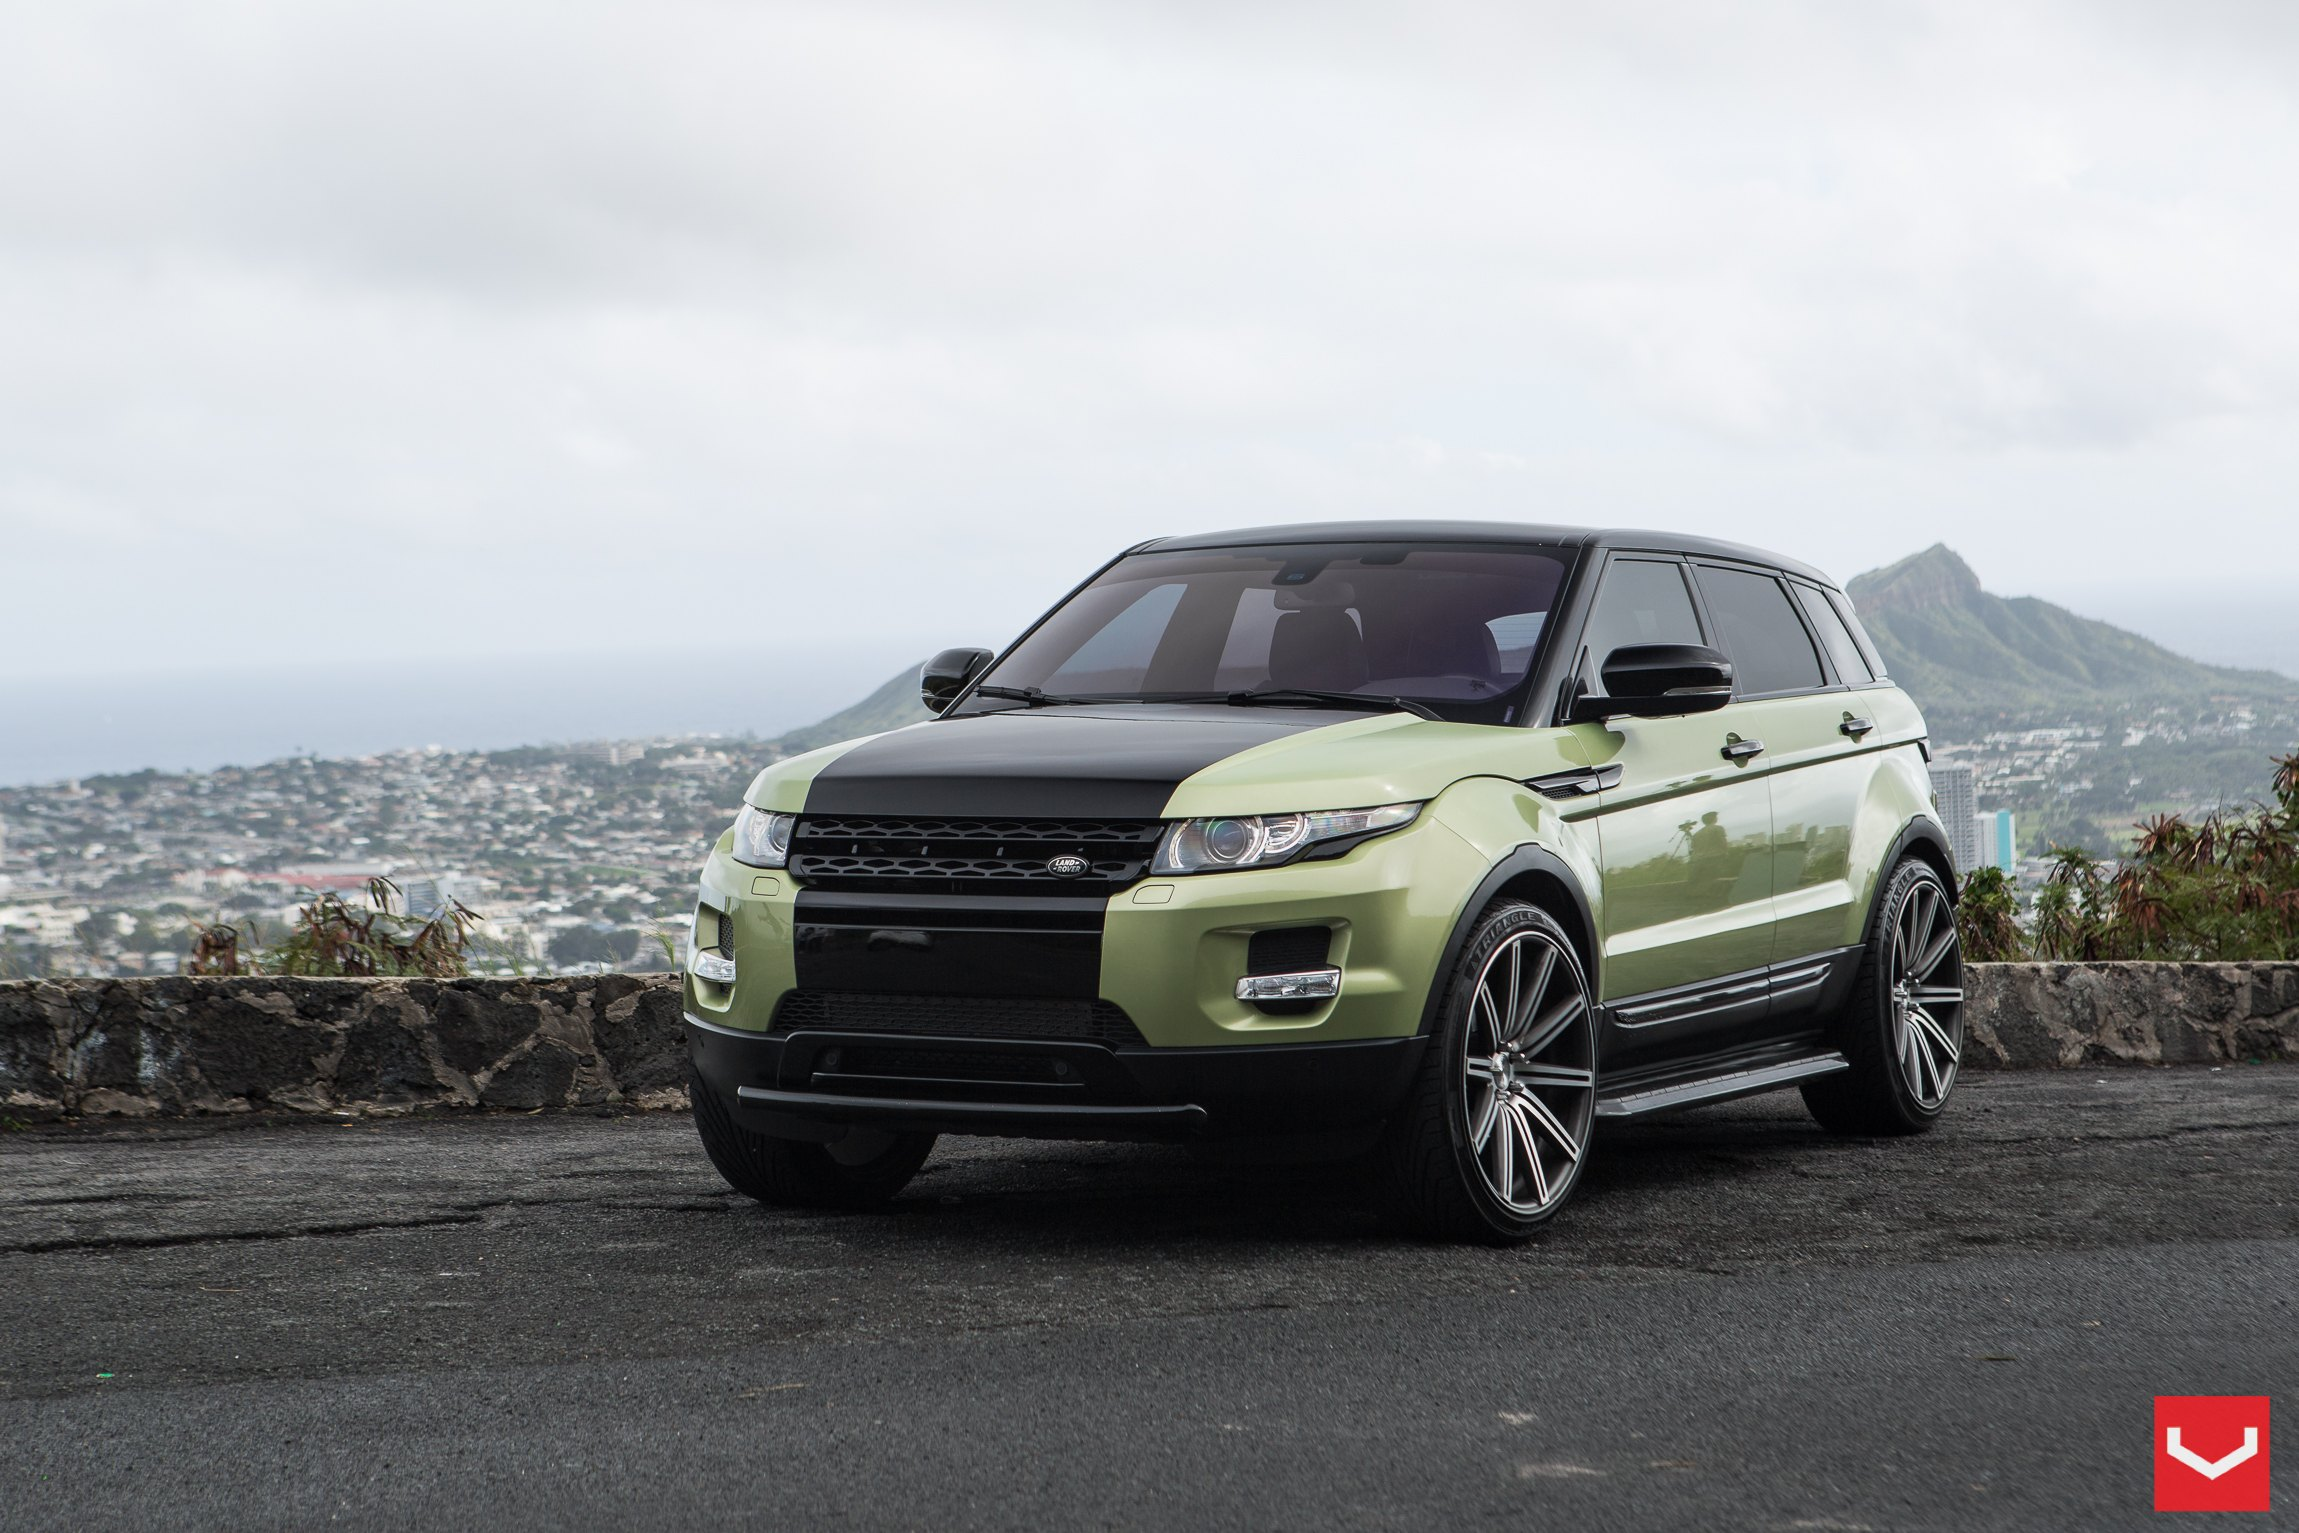 Two Tone Land Rover Range Rover Evoque Gets a Revised Fascia